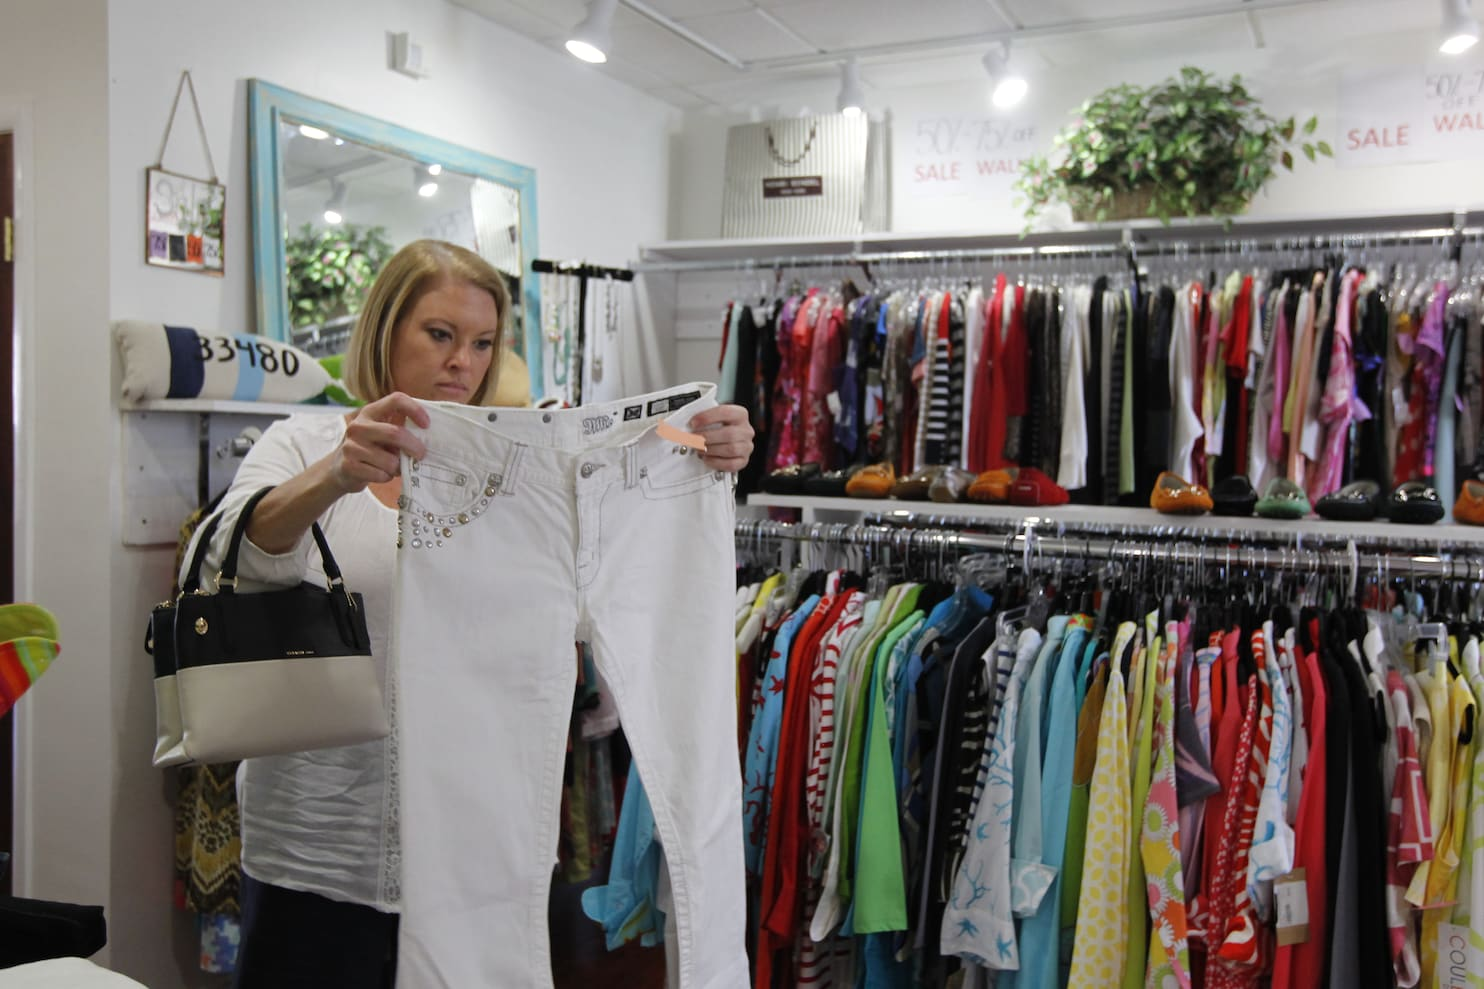 Thrift Store Manager Cover Letter In Palm Beach County Secondhand Designer Clothes Are As Good As